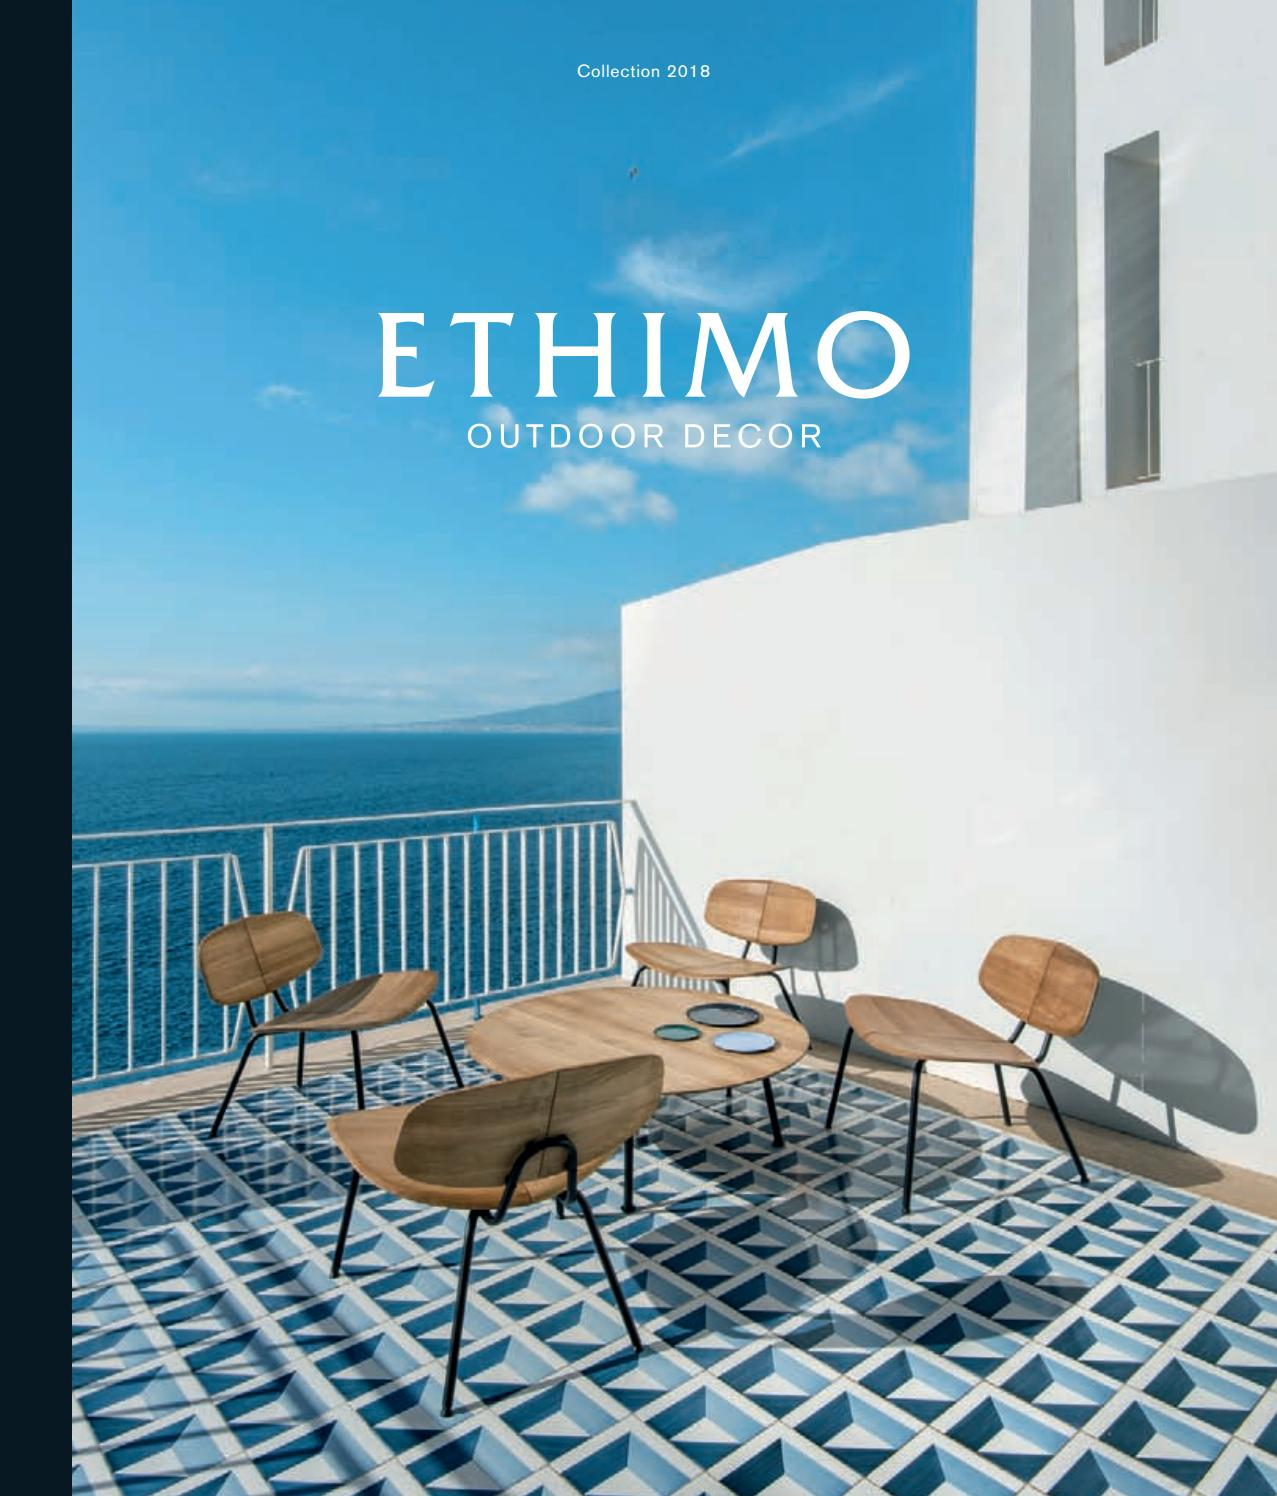 Arredamento Stile Hippie ethimo collection 2018 by ethimo - issuu